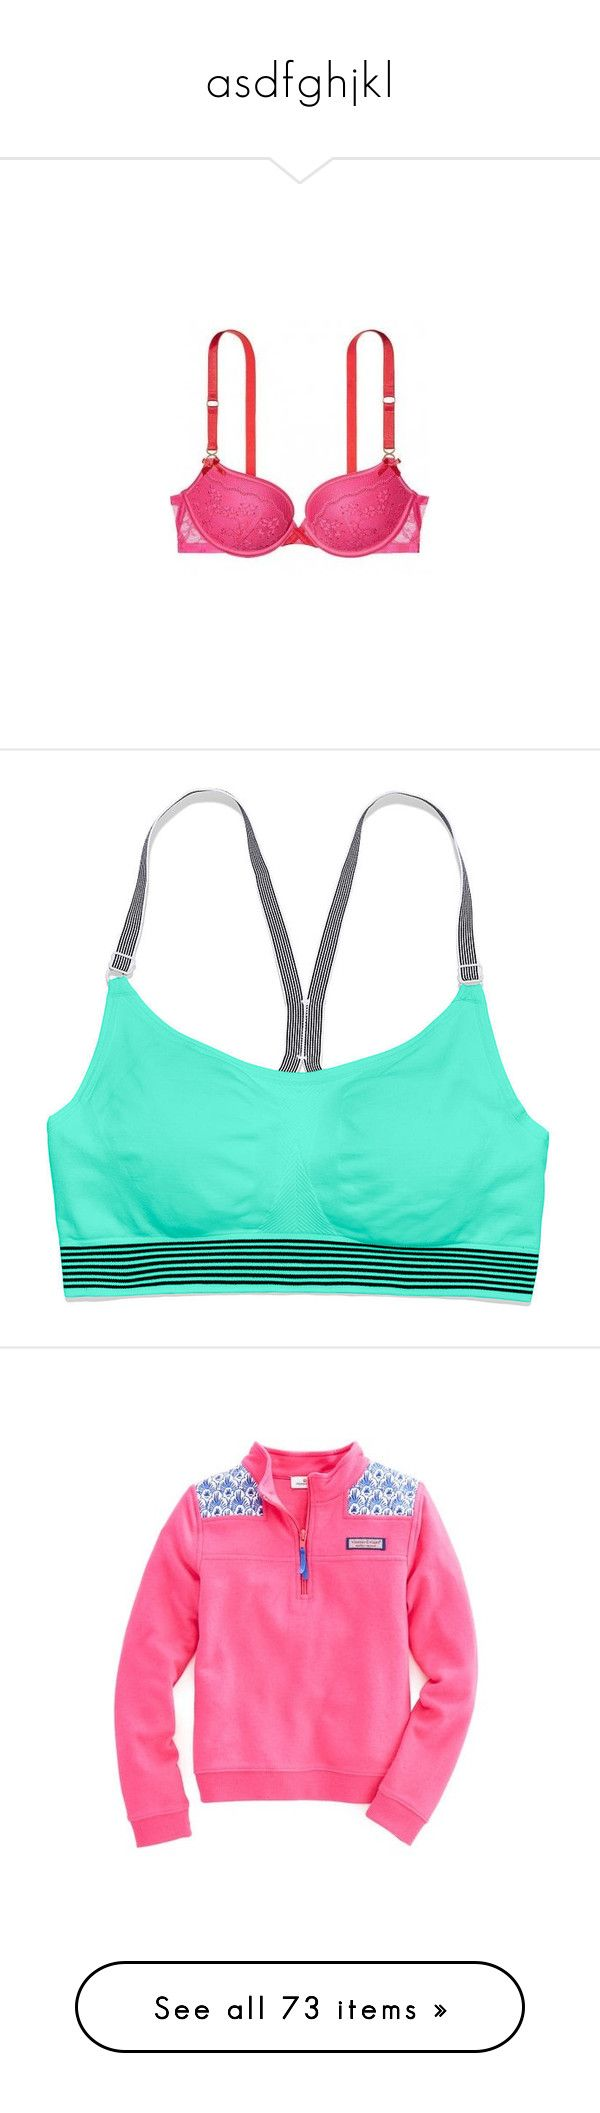 """""""asdfghjkl"""" by livelovebreathelife ❤ liked on Polyvore featuring victoria's secret, activewear, sports bras, tops, workout, underwear, bra, shore club barcode, green sports bra and seamless sports bra"""